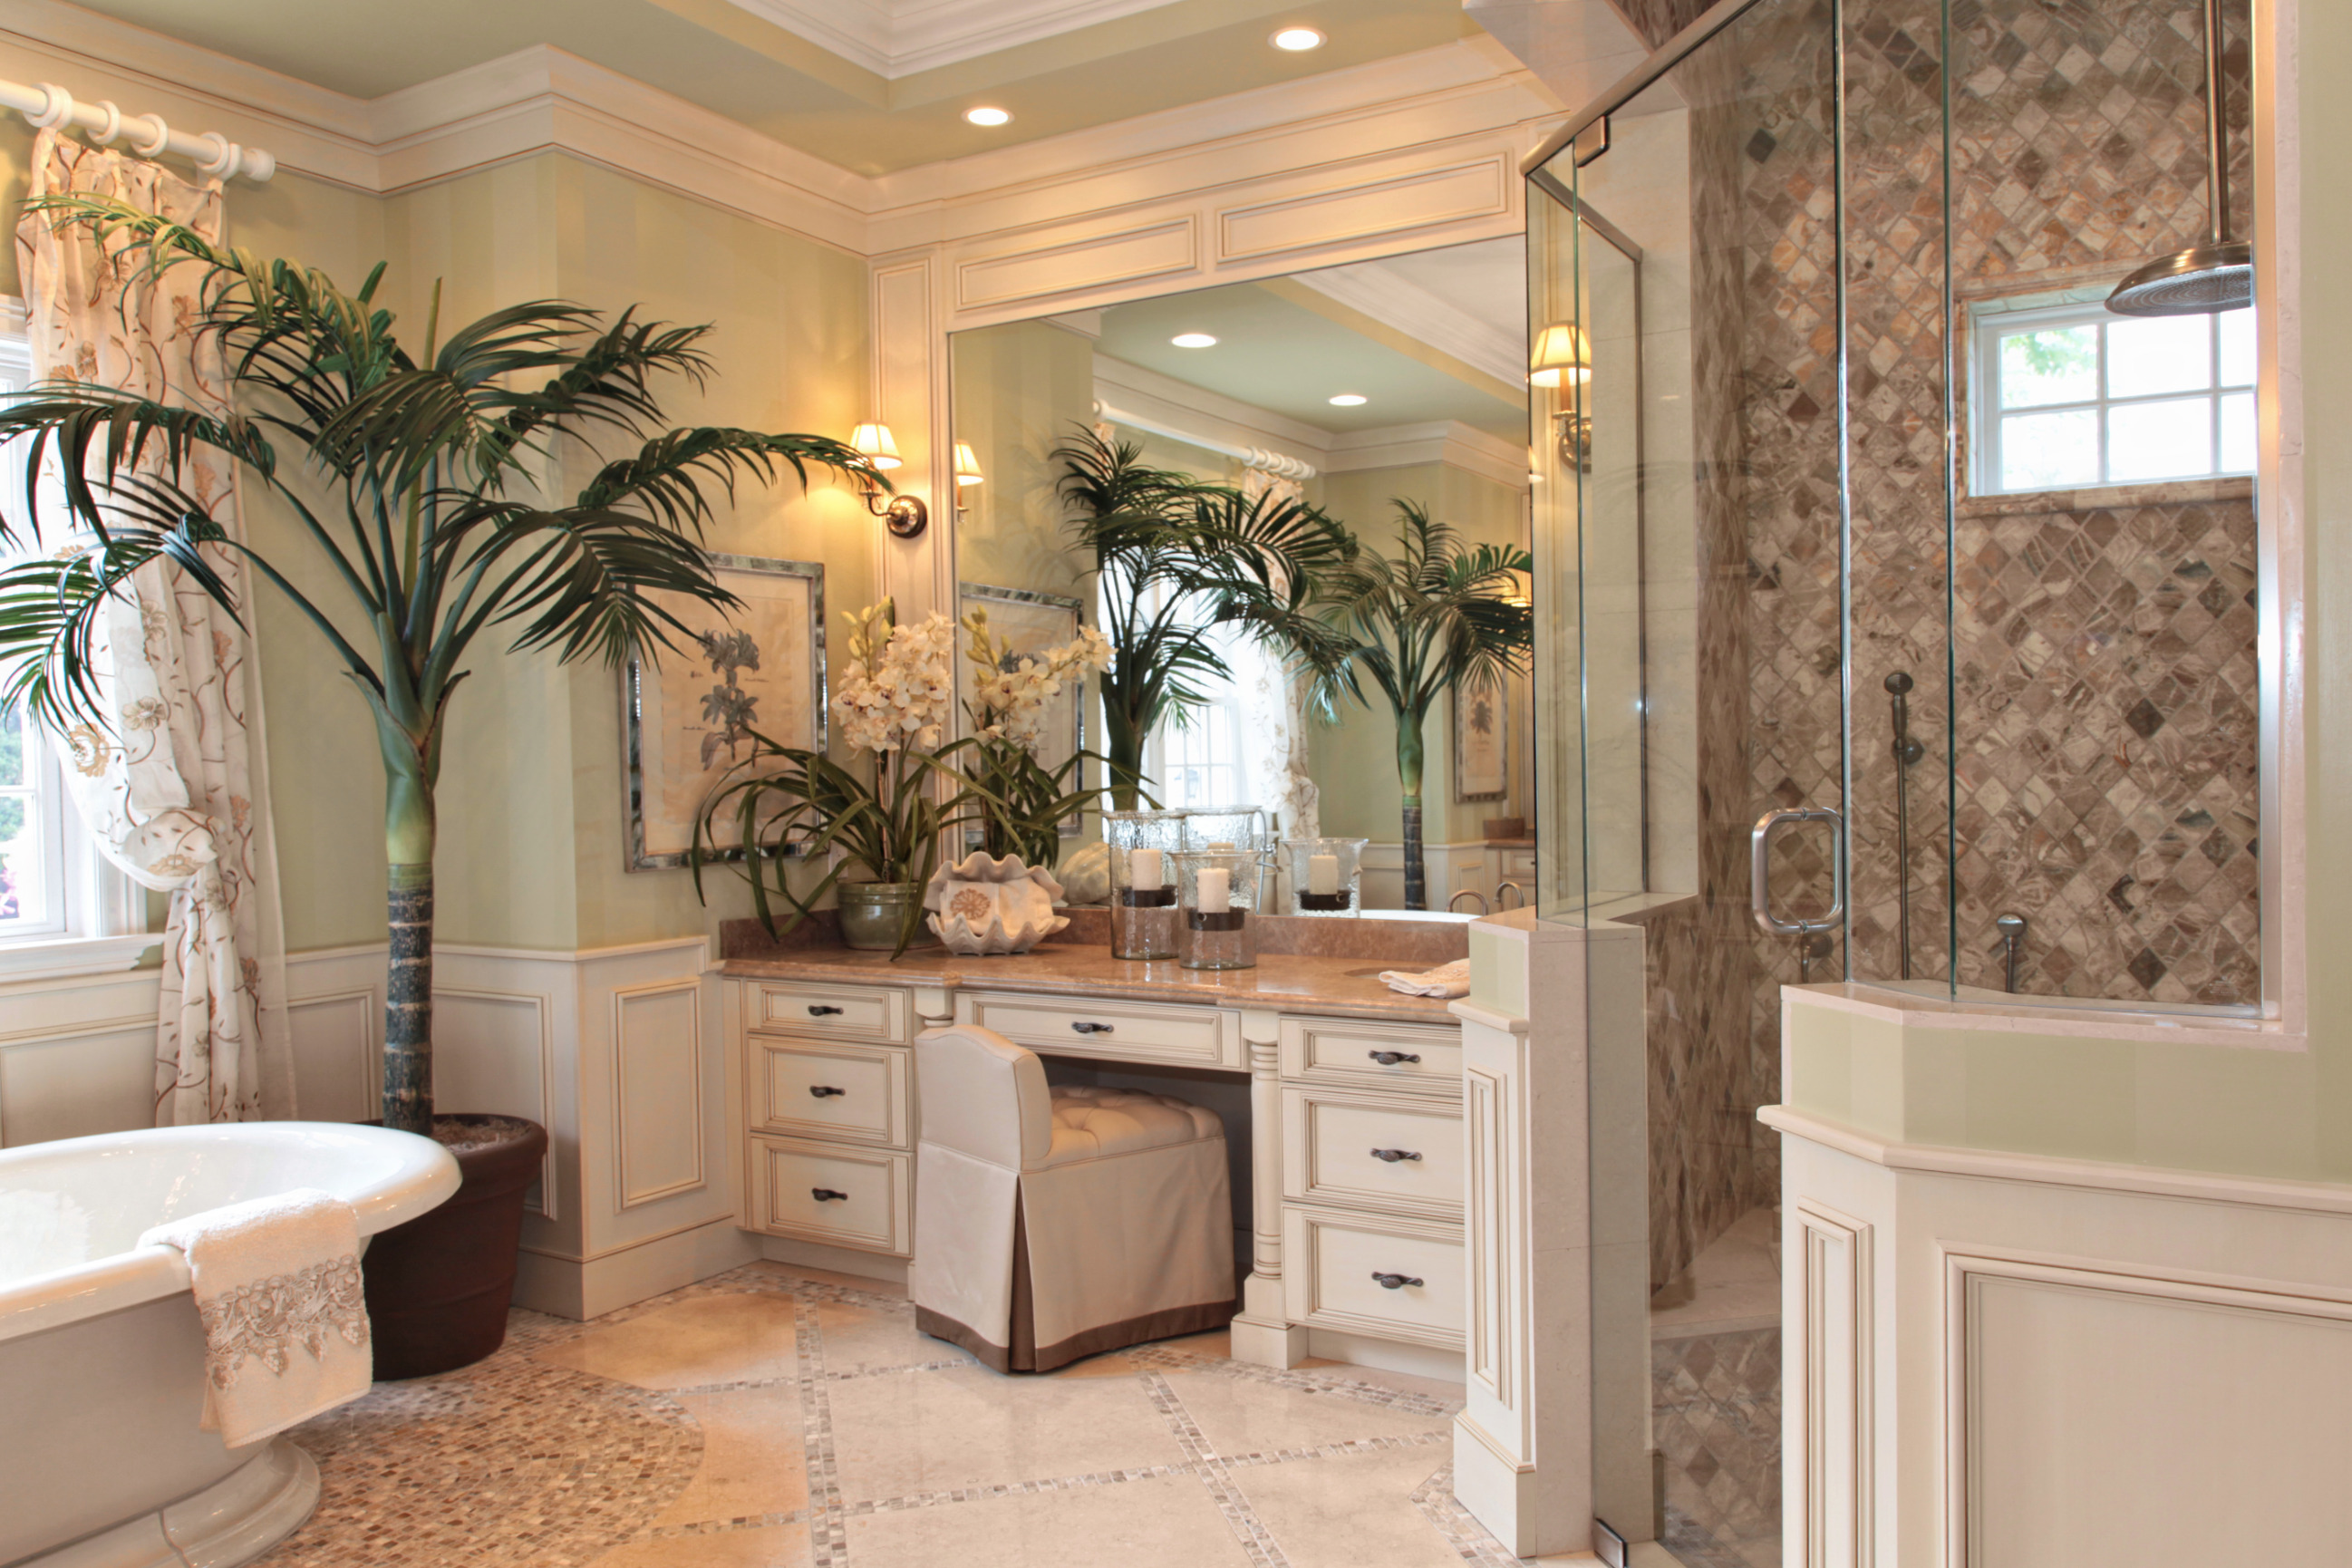 Kitchen Cabinets Stuart Fl florida kitchen designs choice image - many ideas to decorate your